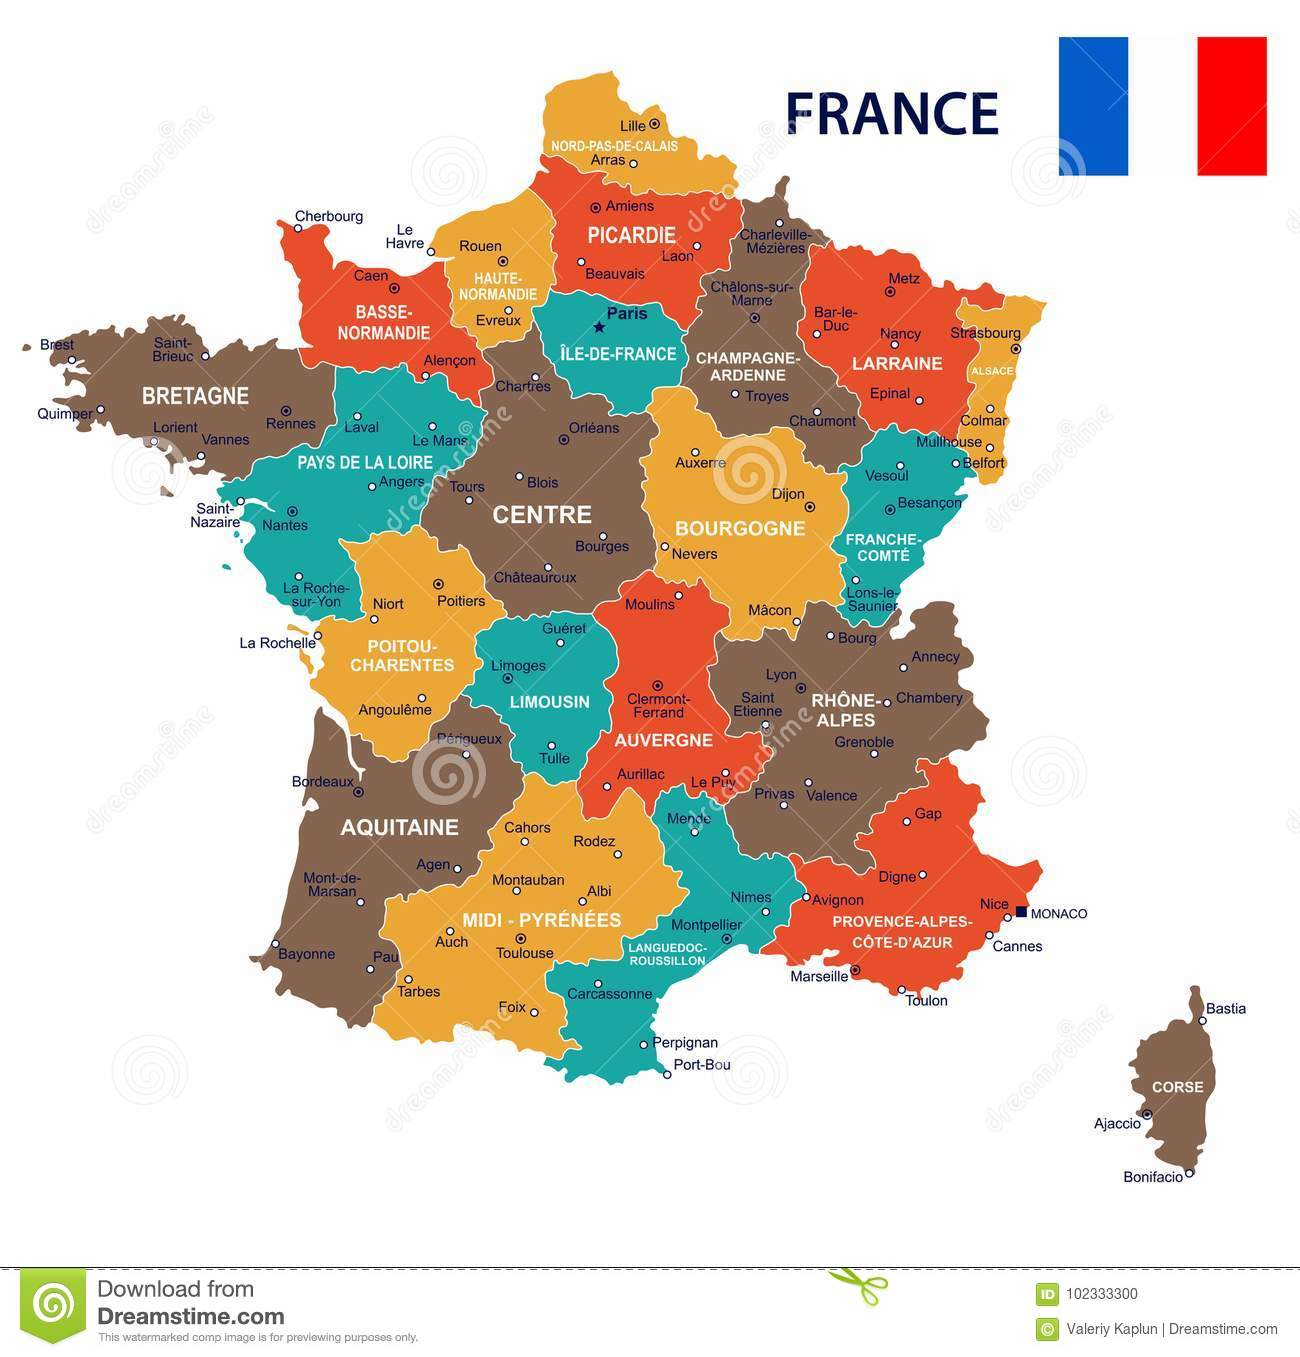 France Map Flag.France Map And Flag Illustration Stock Illustration Illustration